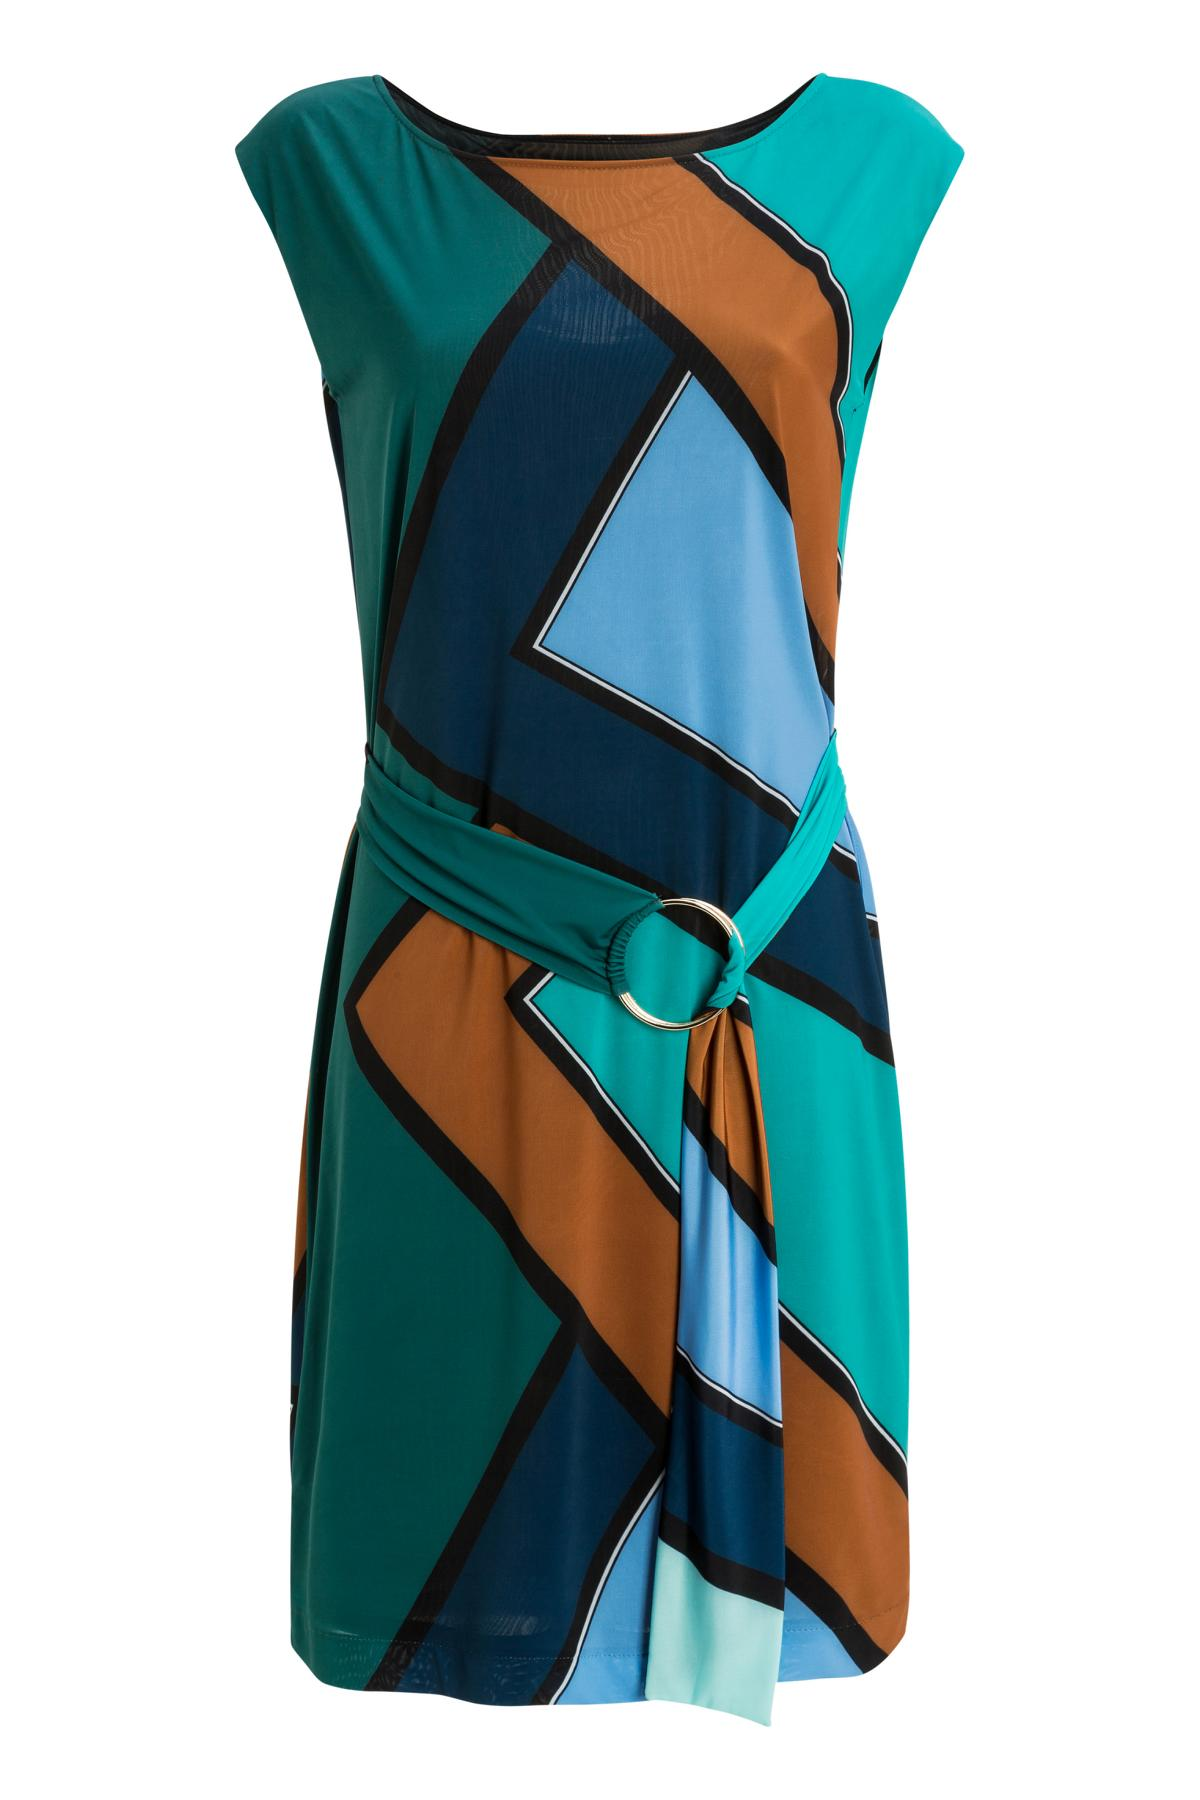 Ana Alcazar Graphic Dress Mancynis